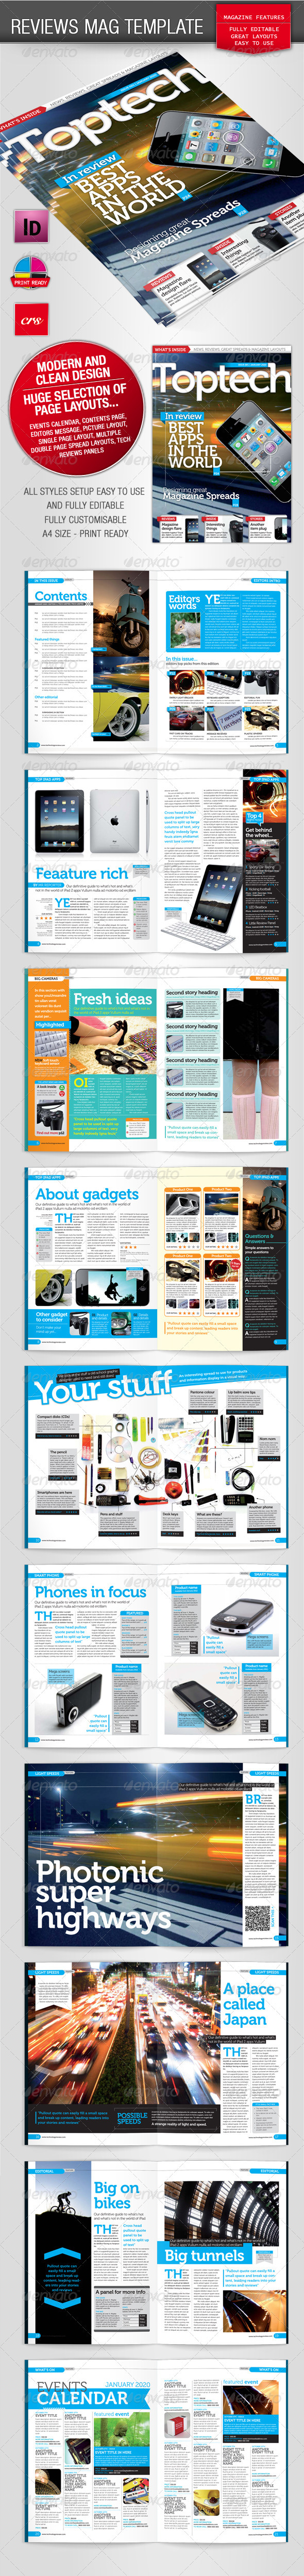 Tech Reviews Magazine Template